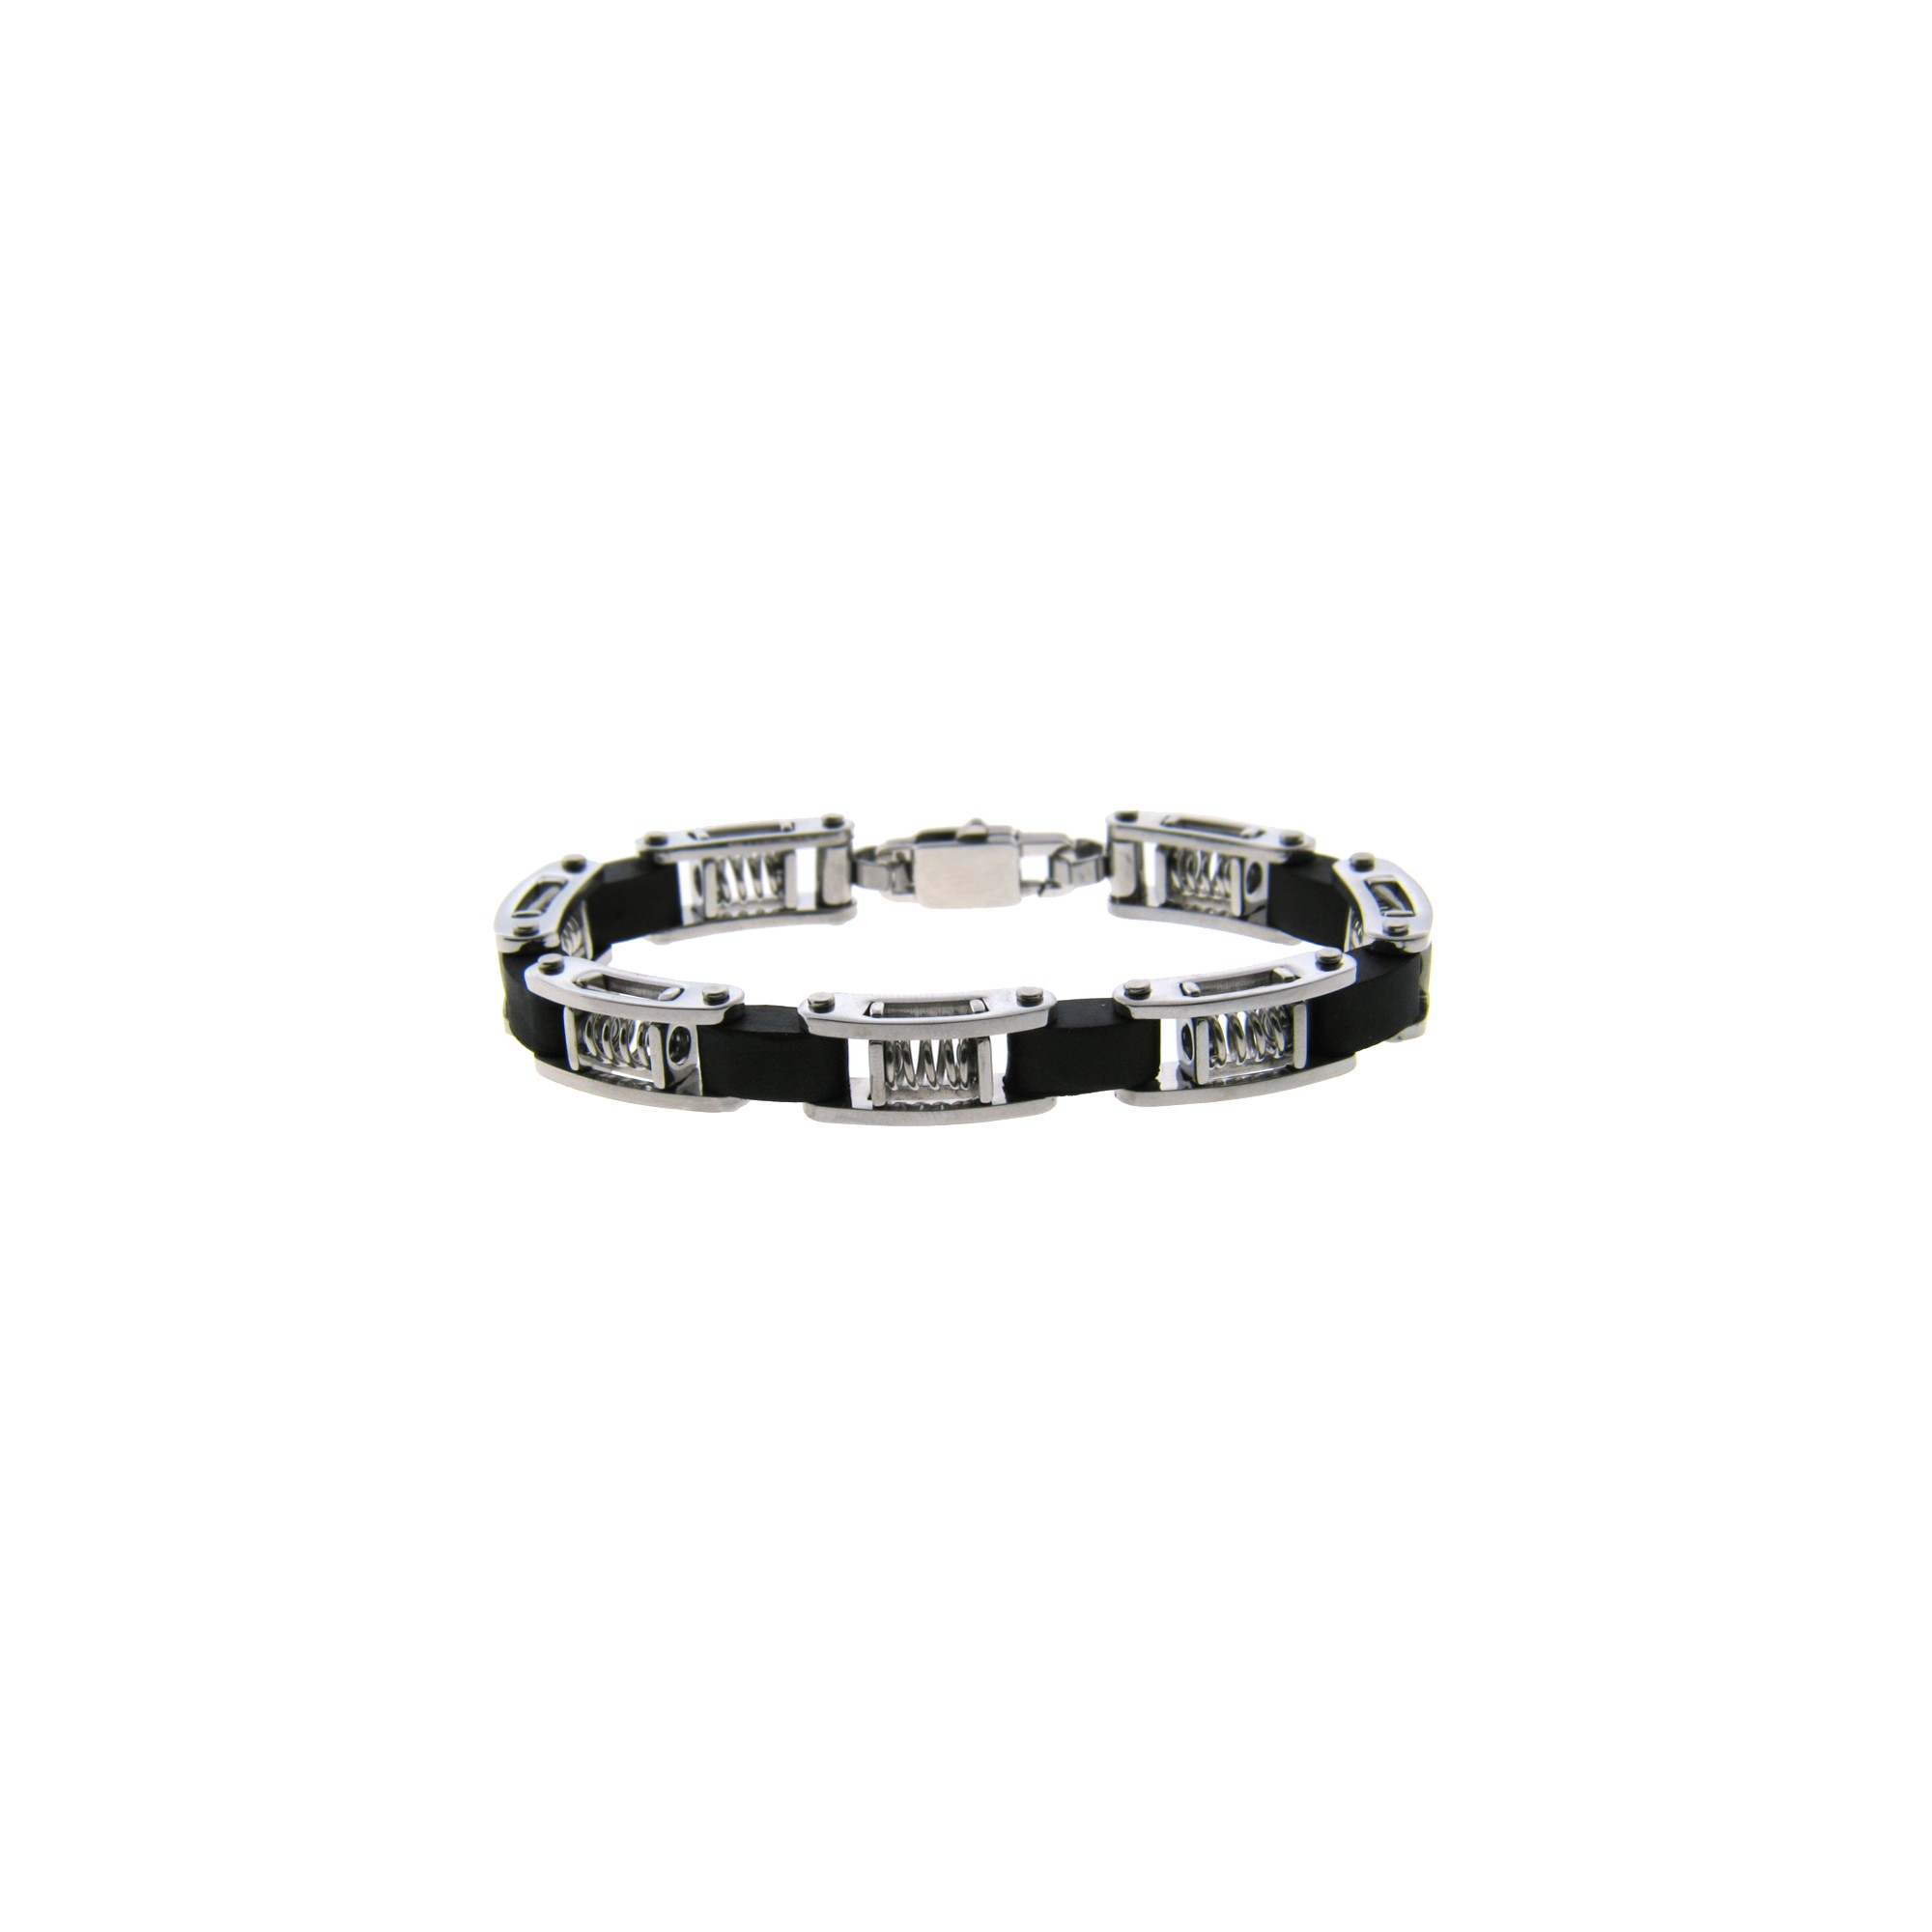 Men's Stainless Steel and Rubber Bracelet with Spring Links - Black, Size: Small, Black/Silver/Silver